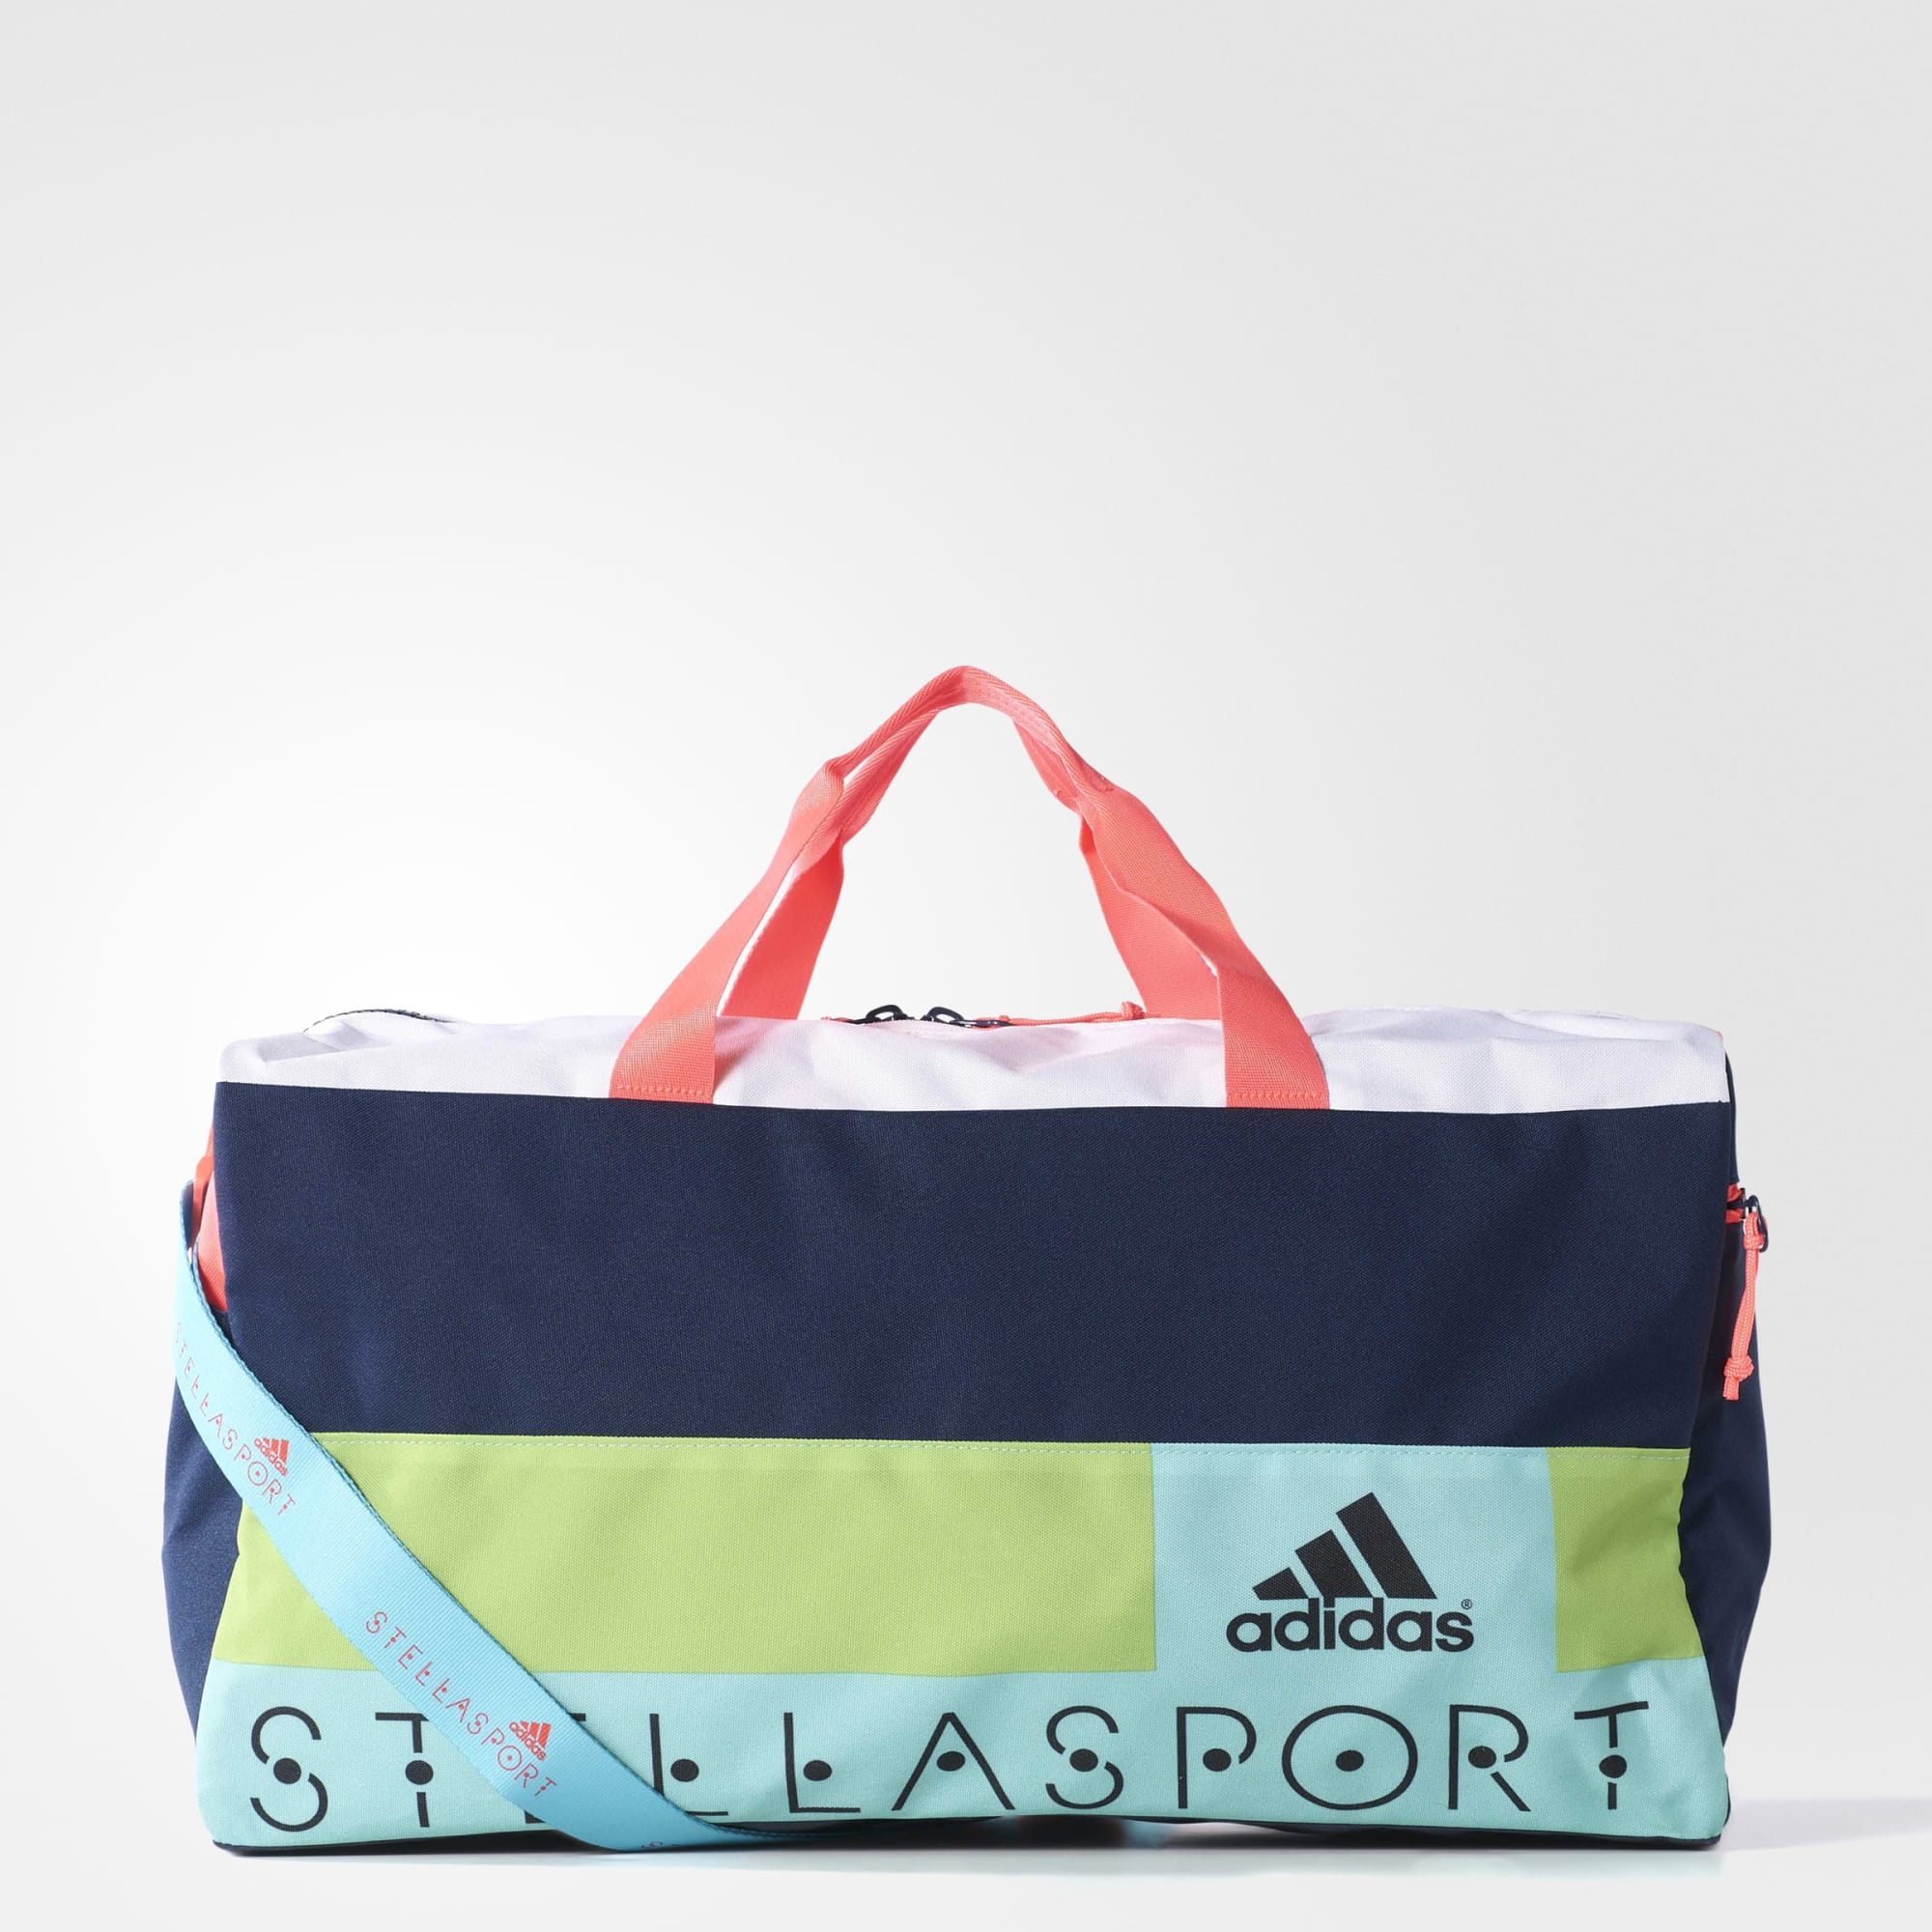 Details about ADIDAS STELLASPORT McCARTNEY WOMEN TEAM BACK GYM WORKOUT  DUFFEL BAG STYLISH NEW 1f8a02ce48